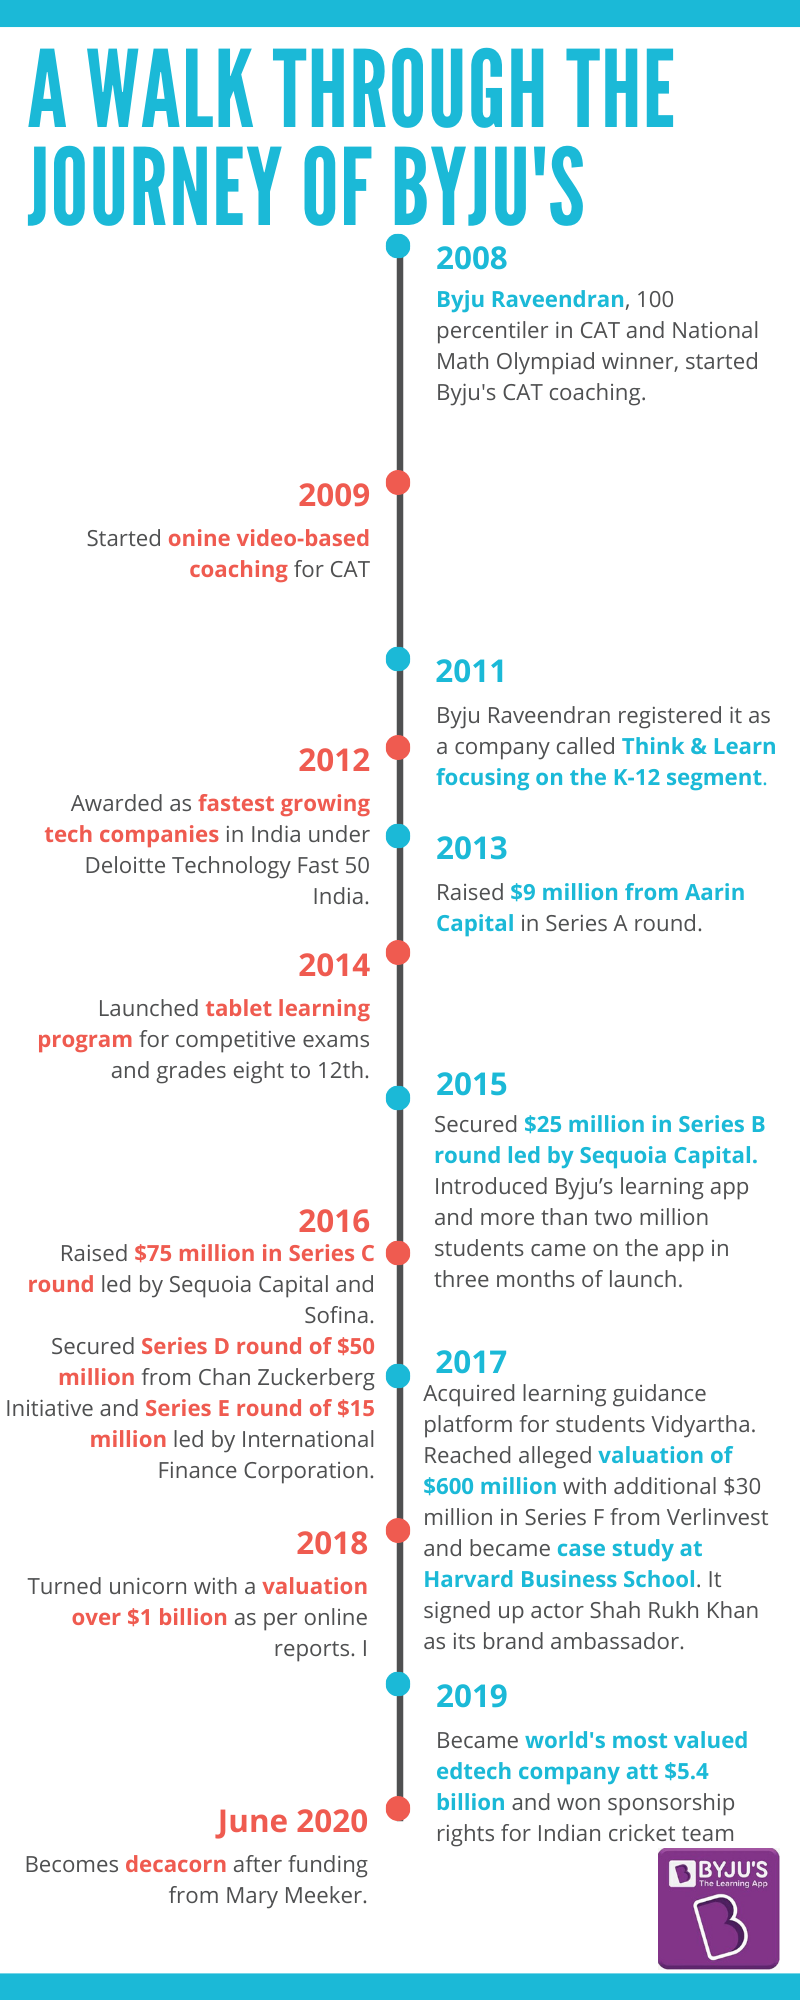 Journey of Byju's from a village in Keral to an ed-tech start-up worth $10 billion.